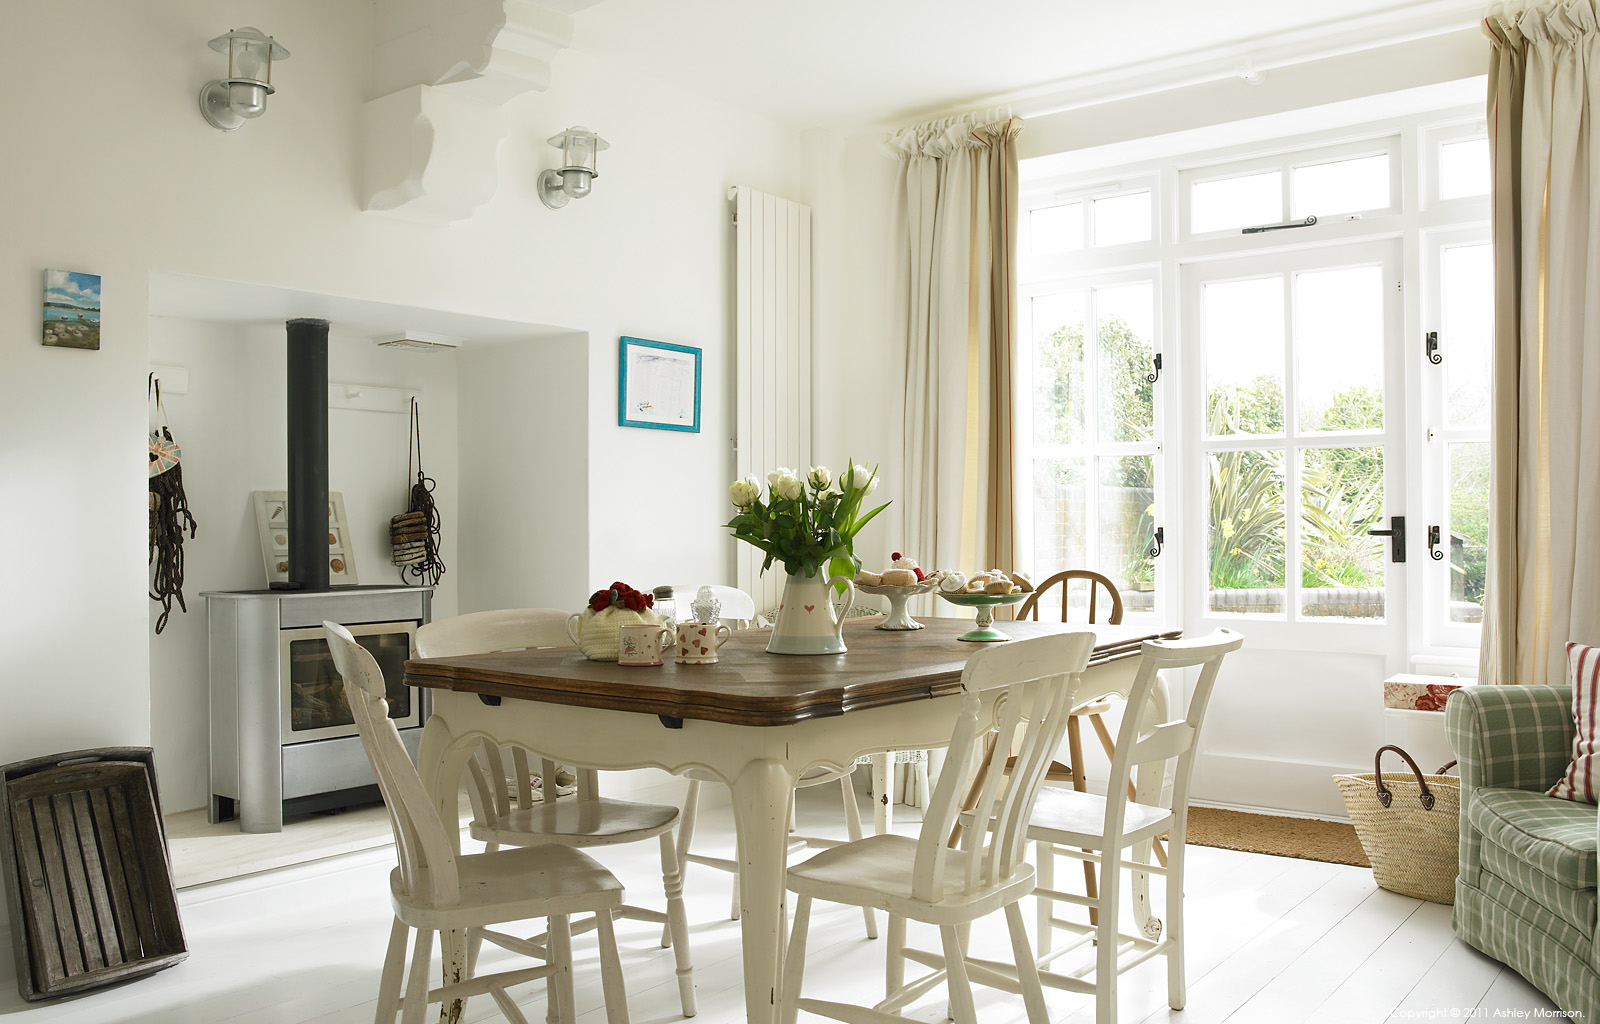 The kitchen table in Beth and Jason Cooper's three-storey period terrace called 'Brick Rose House' in the West Sussex village of West Wittering.